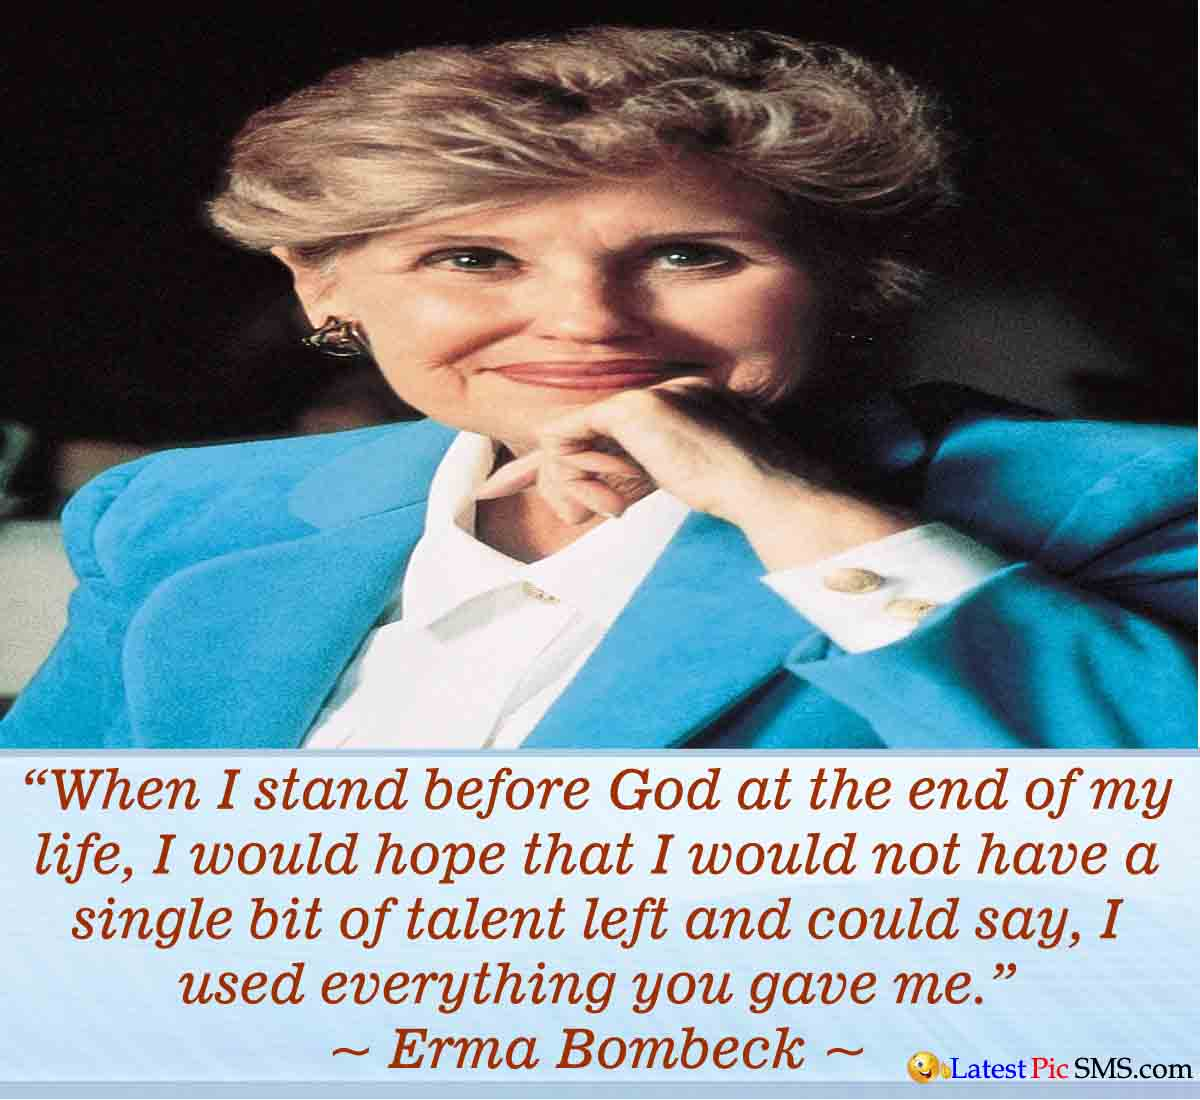 Erma Bombeck life quotes - Thoughts on Life Images for Whatsapp and Facebook